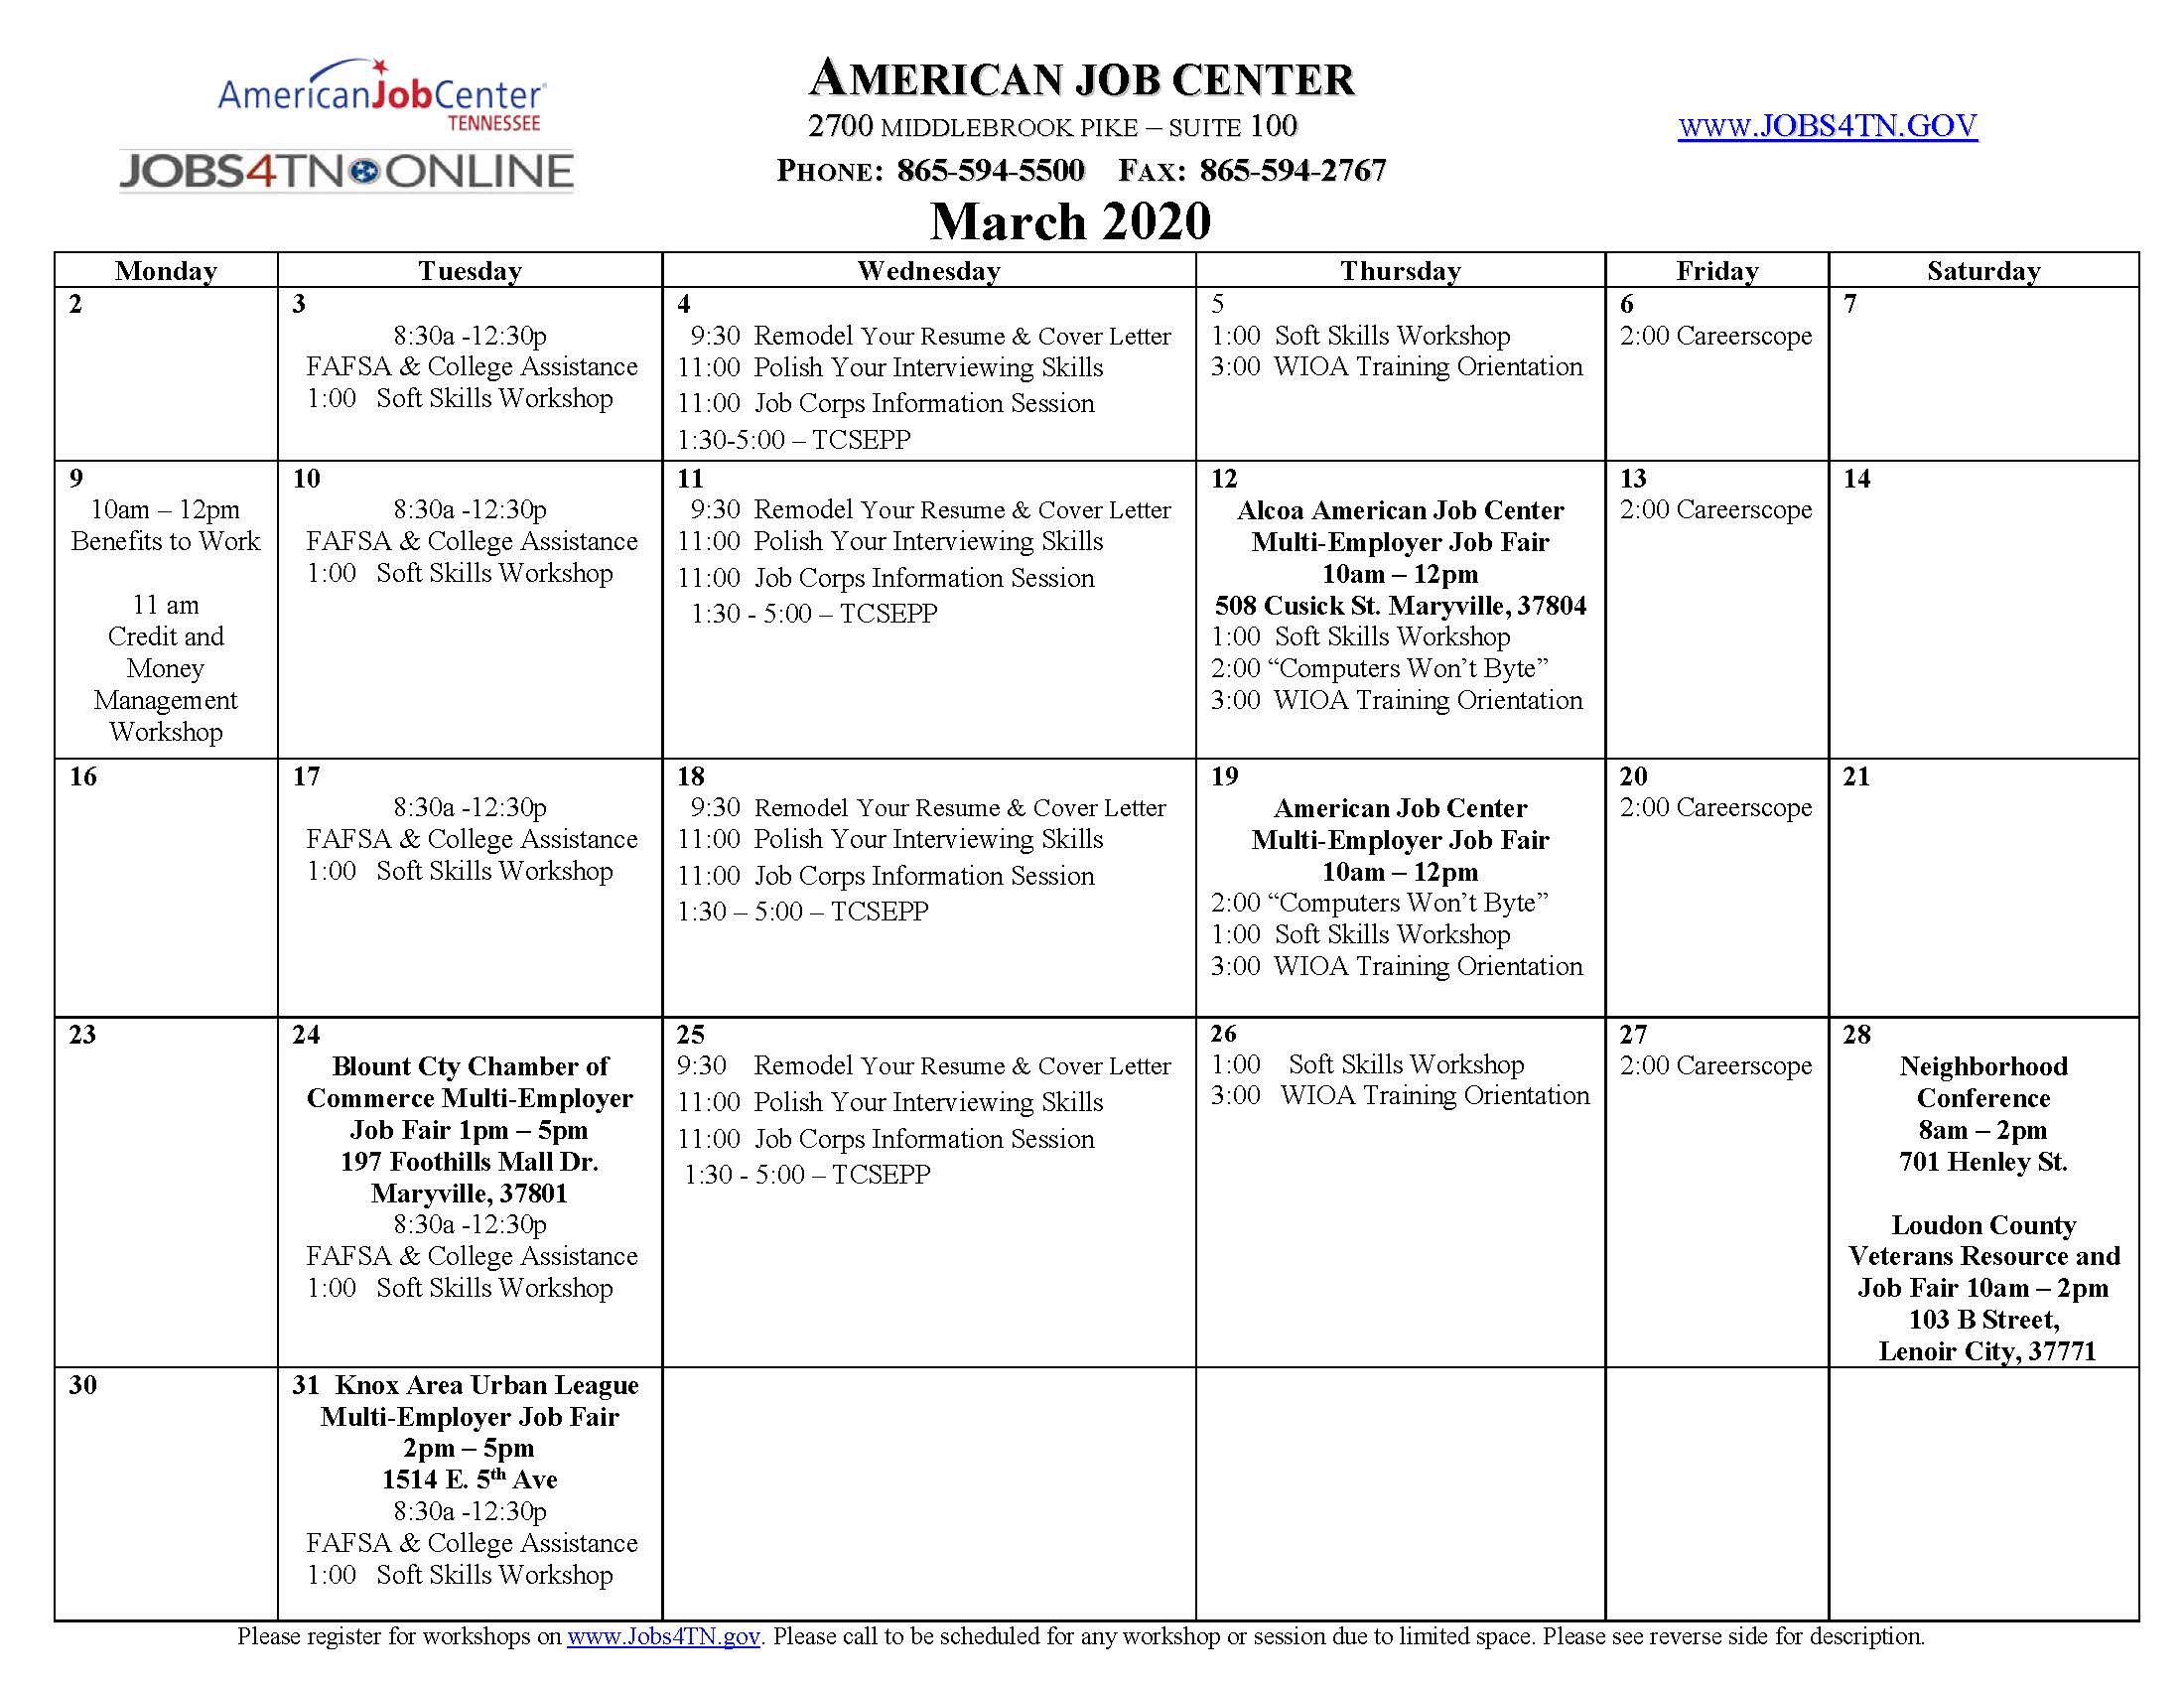 Knoxville AJC Workshops/Events